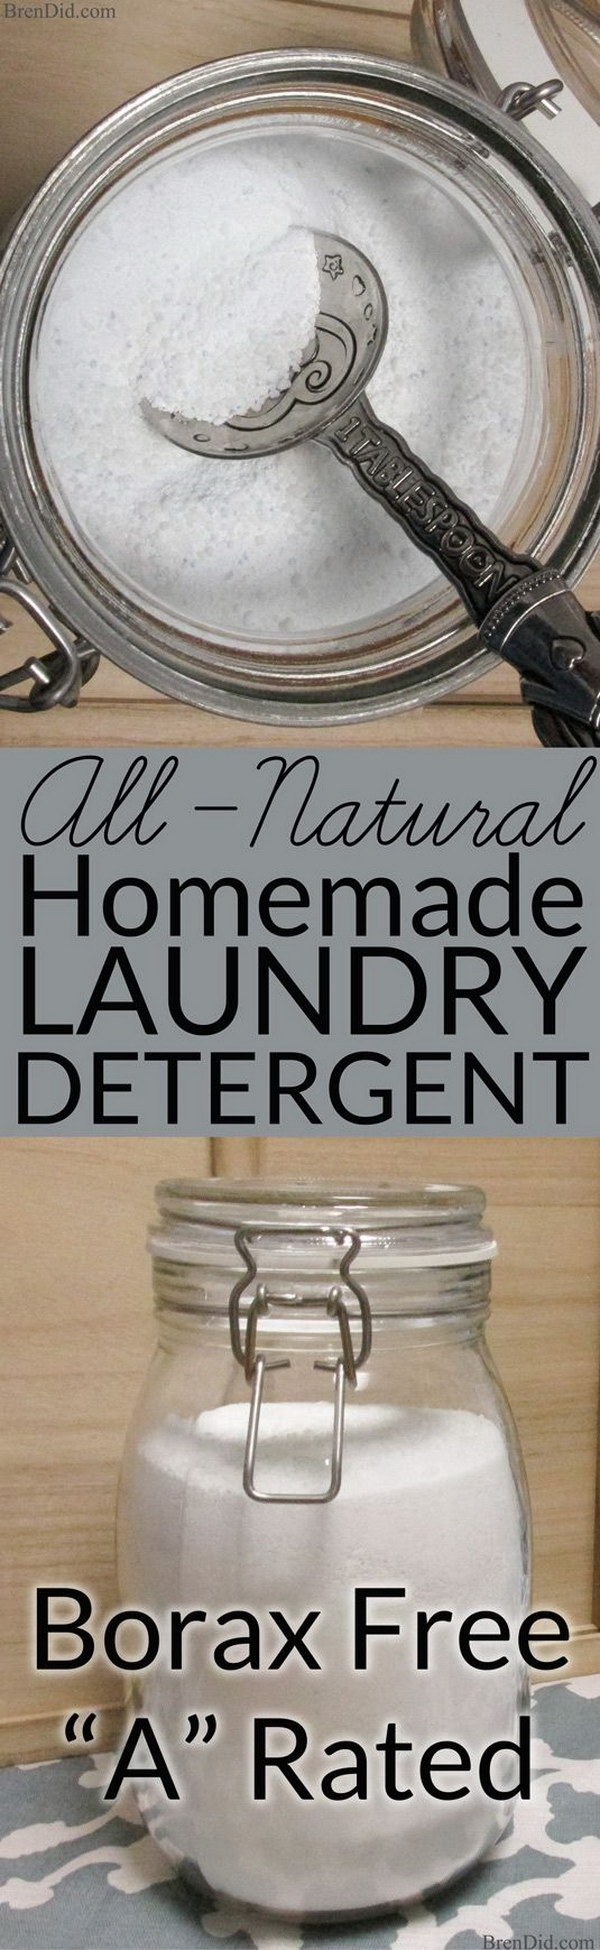 All Natural Homemade Laundry Detergent with No Borax.